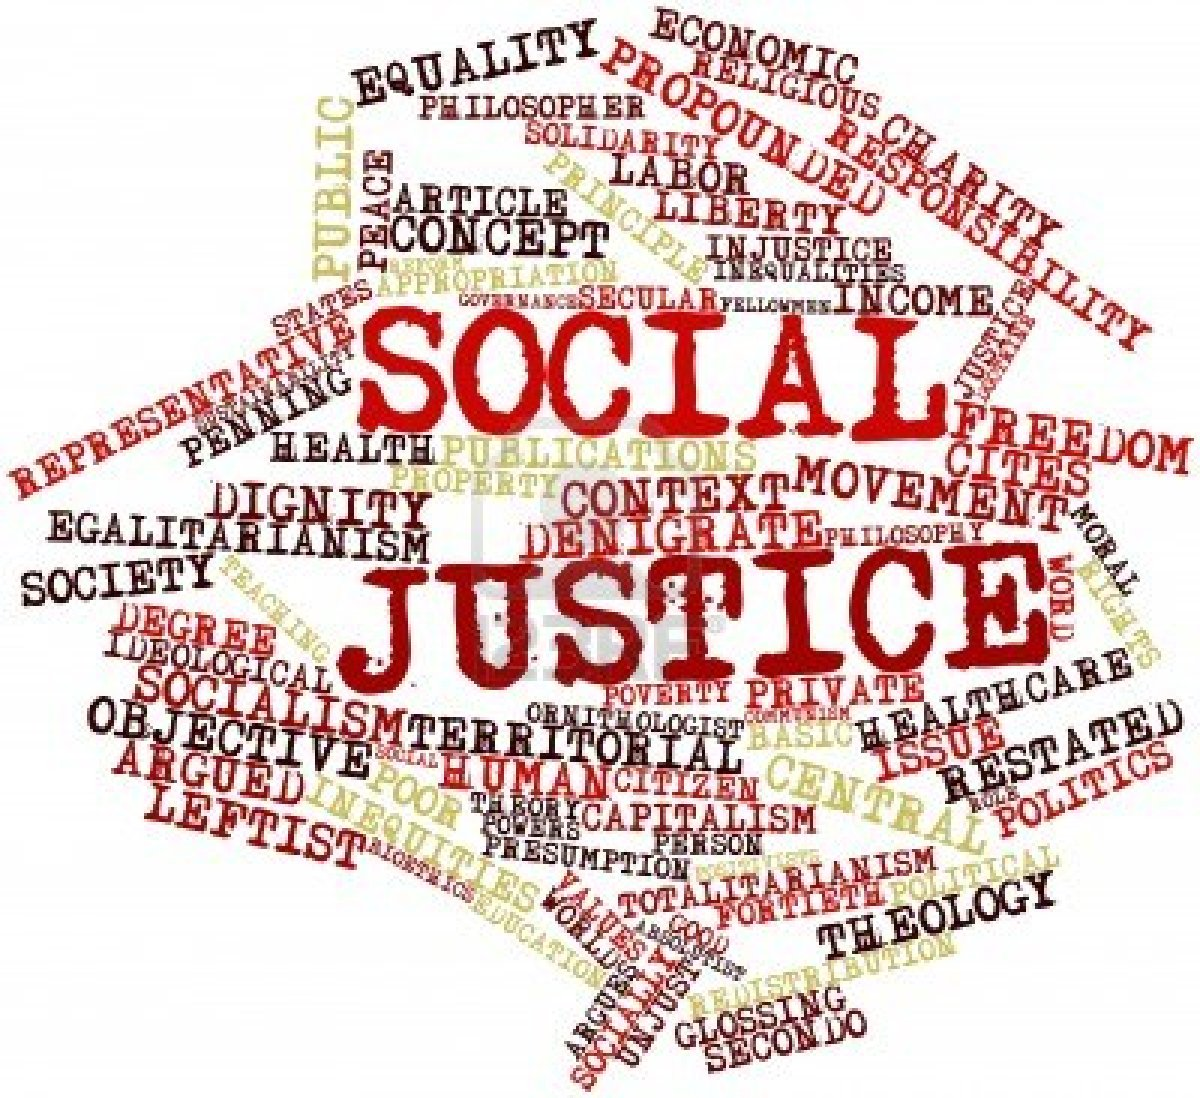 looking at the ethical issues raised in research social work essay Crm ethics and solution in 10 ethical issues raised by it capabilities, we examined earn a master's degree in social work or counseling.